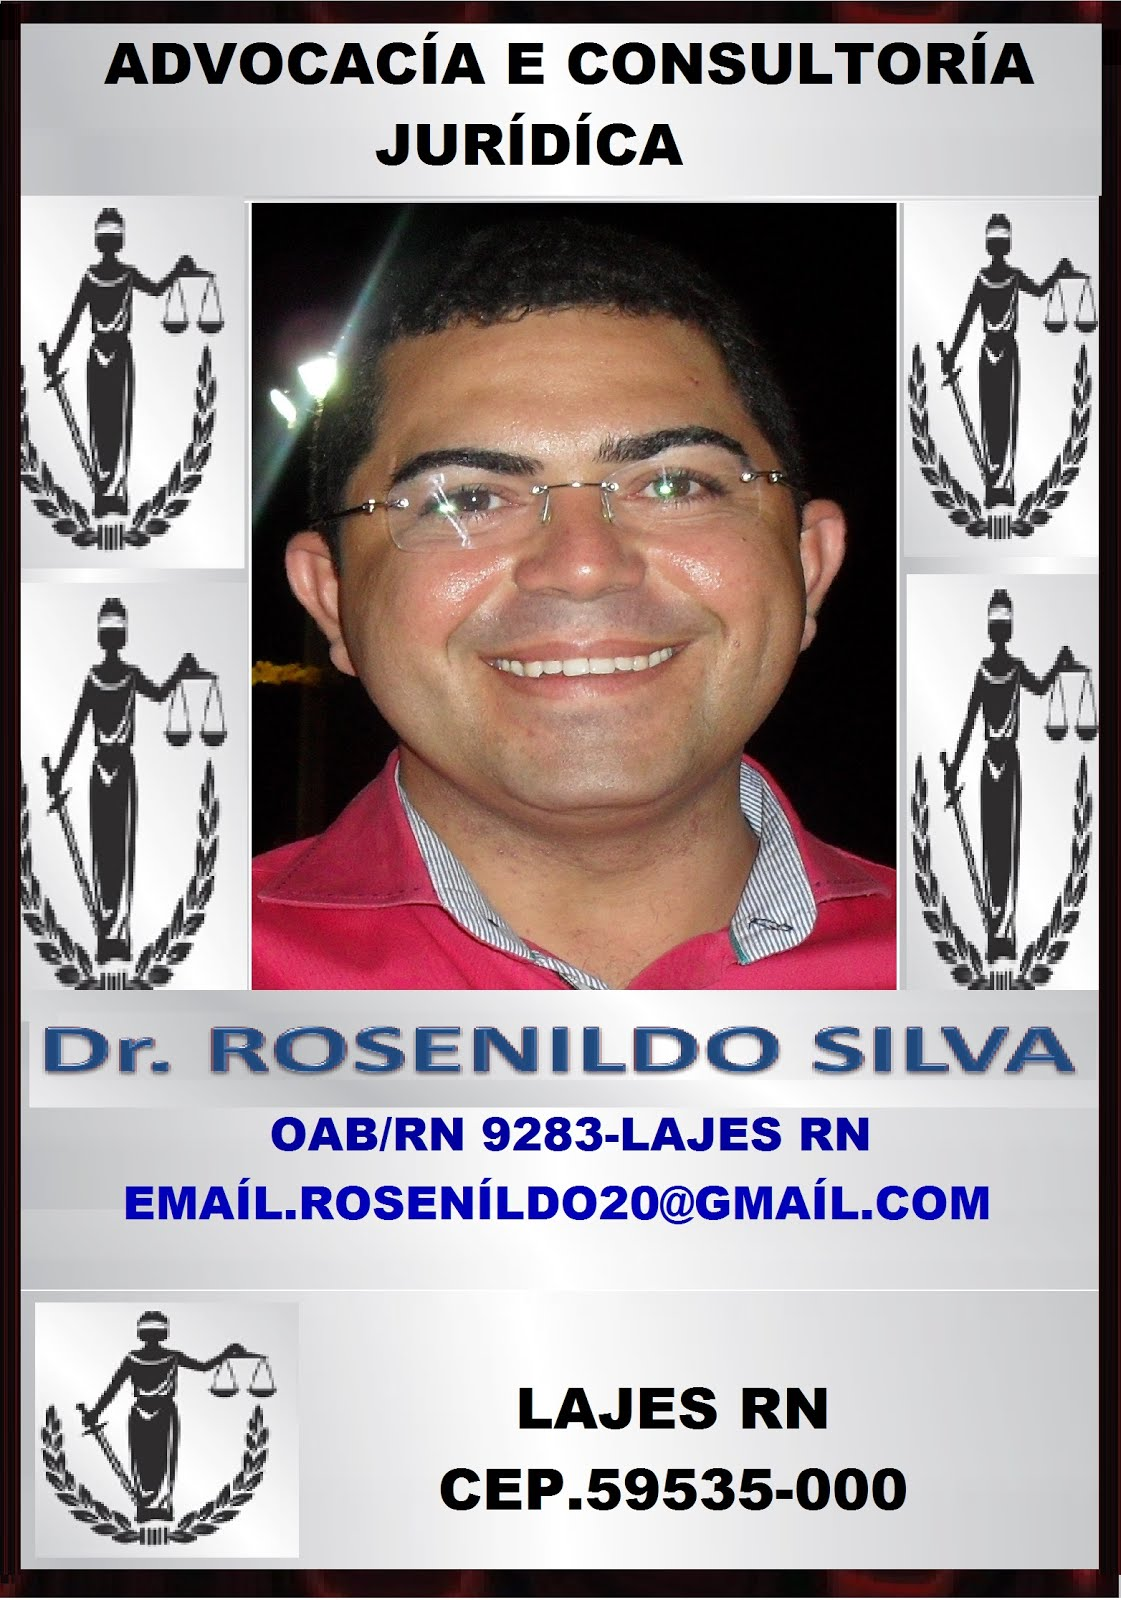 ADVOGADO DR ROSENILDO SILVA LAJES RN